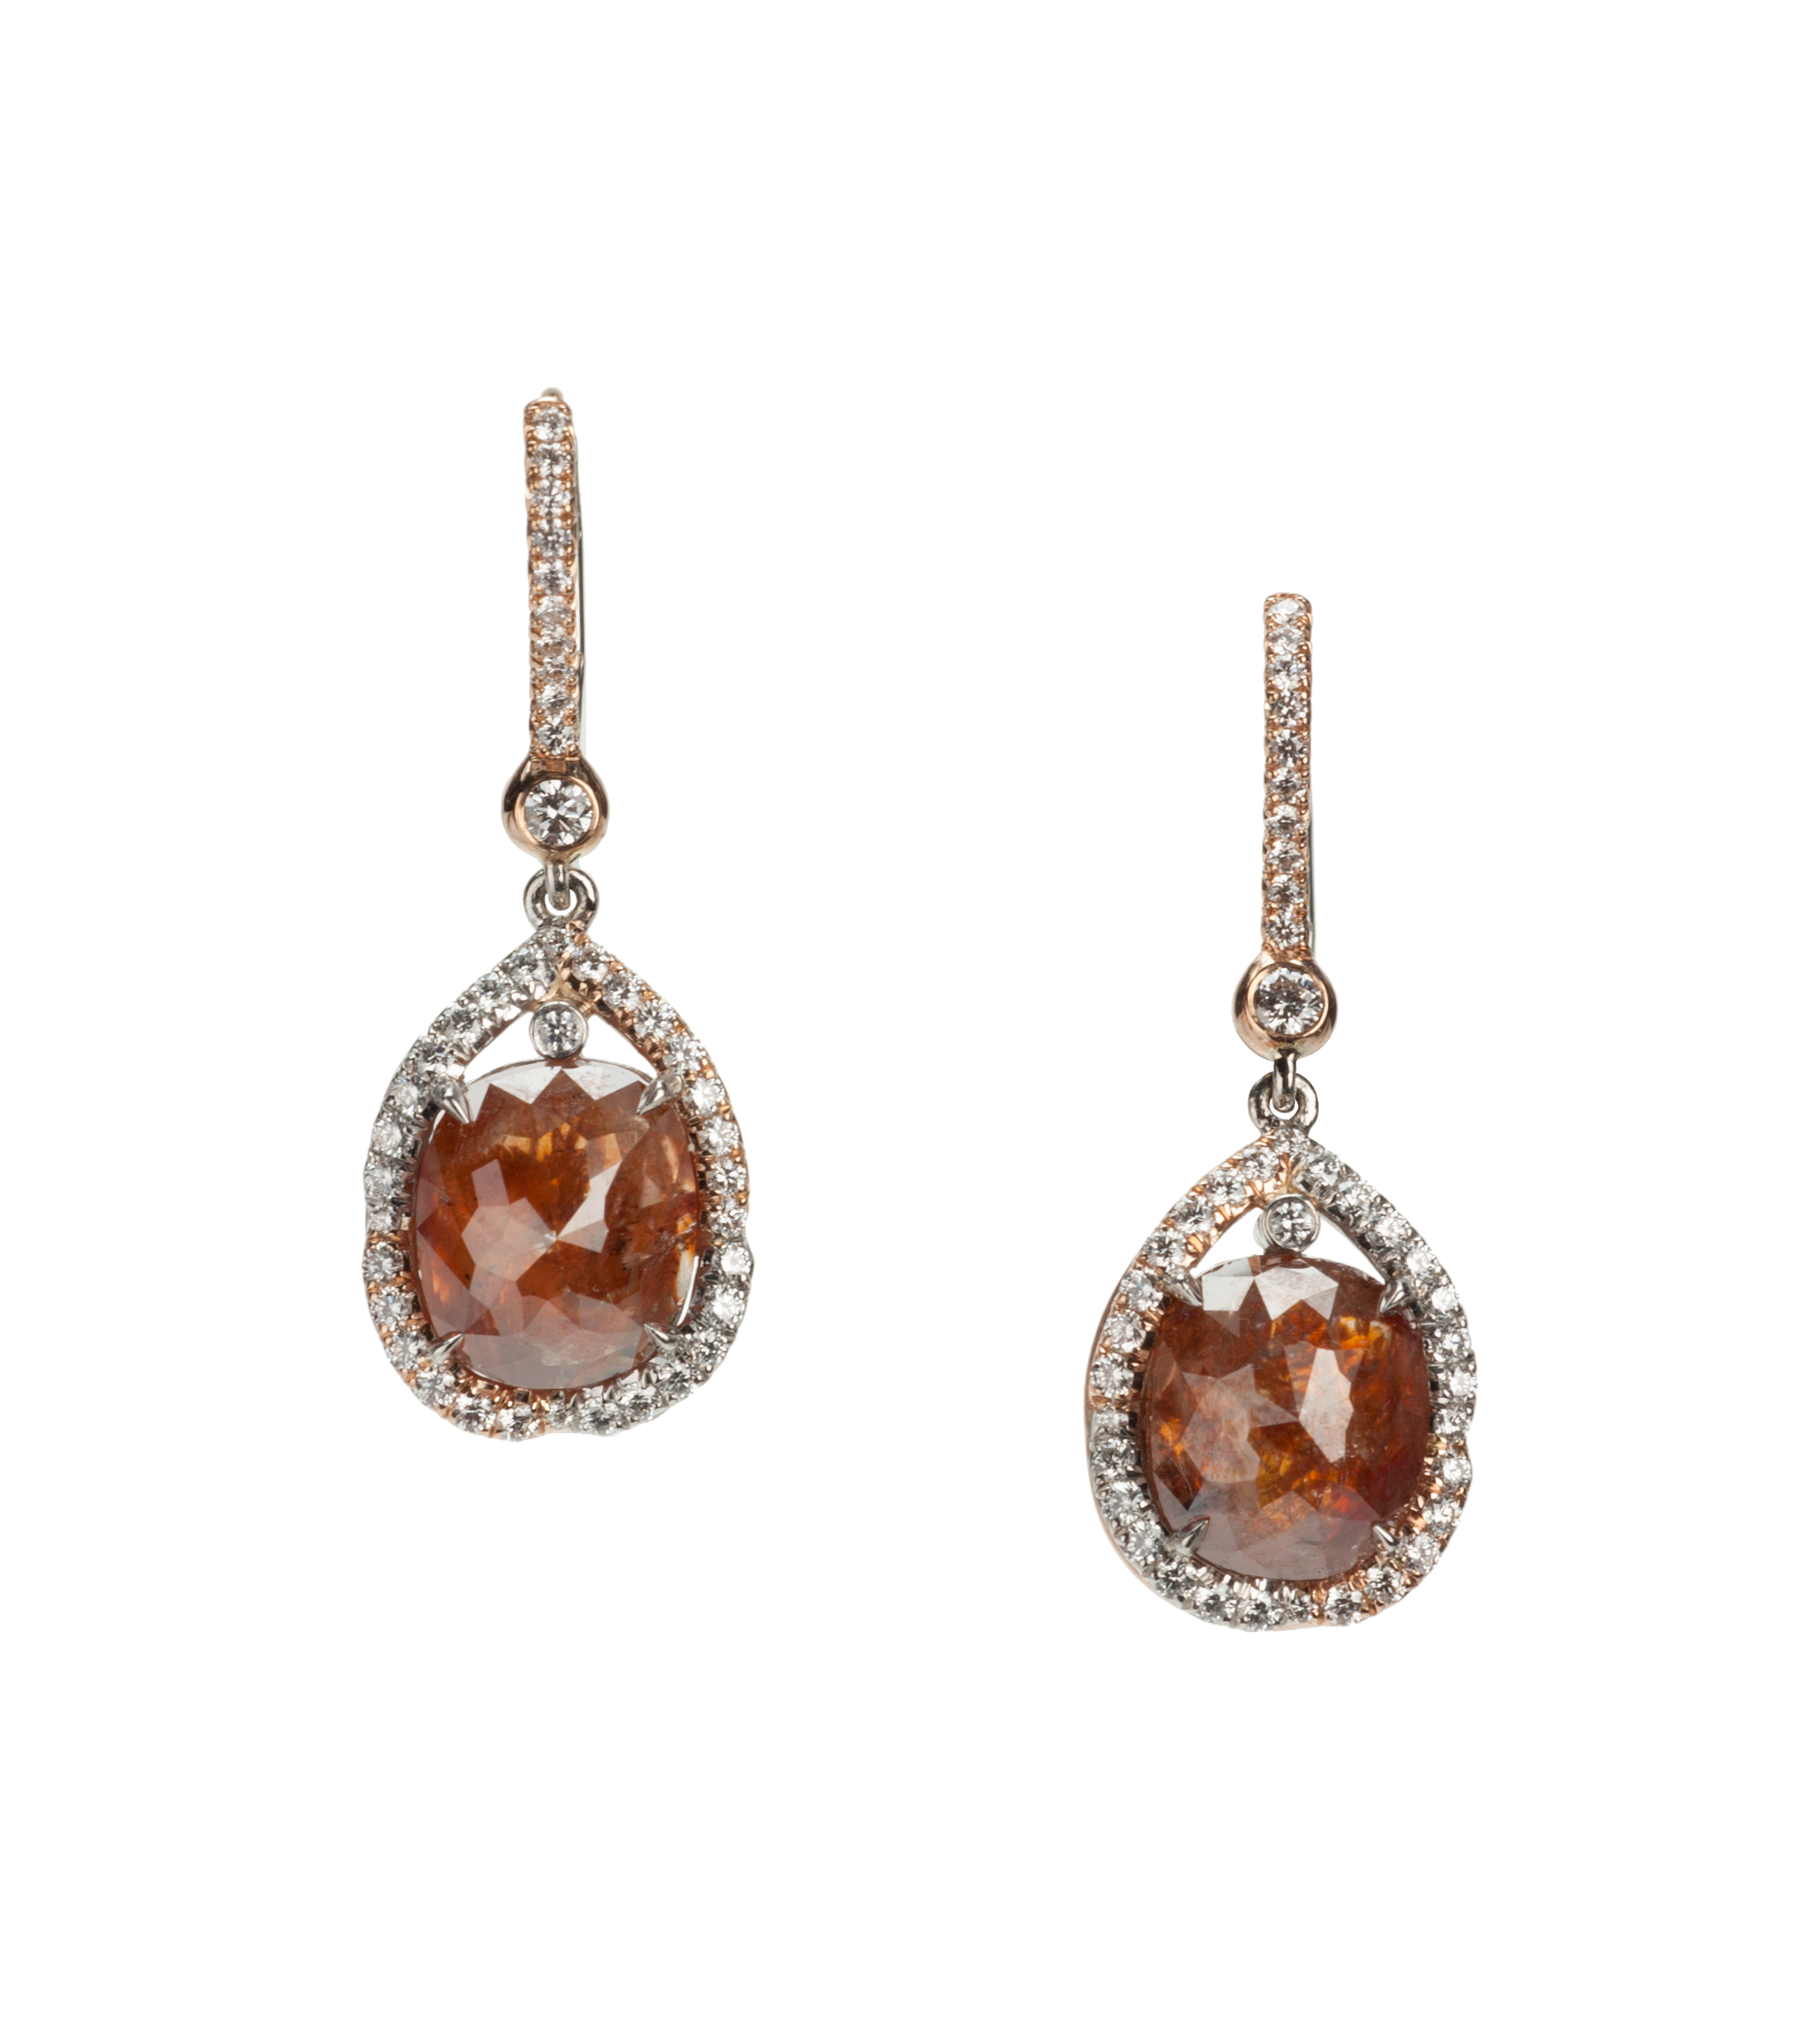 Pink-brown diamond drop earrings